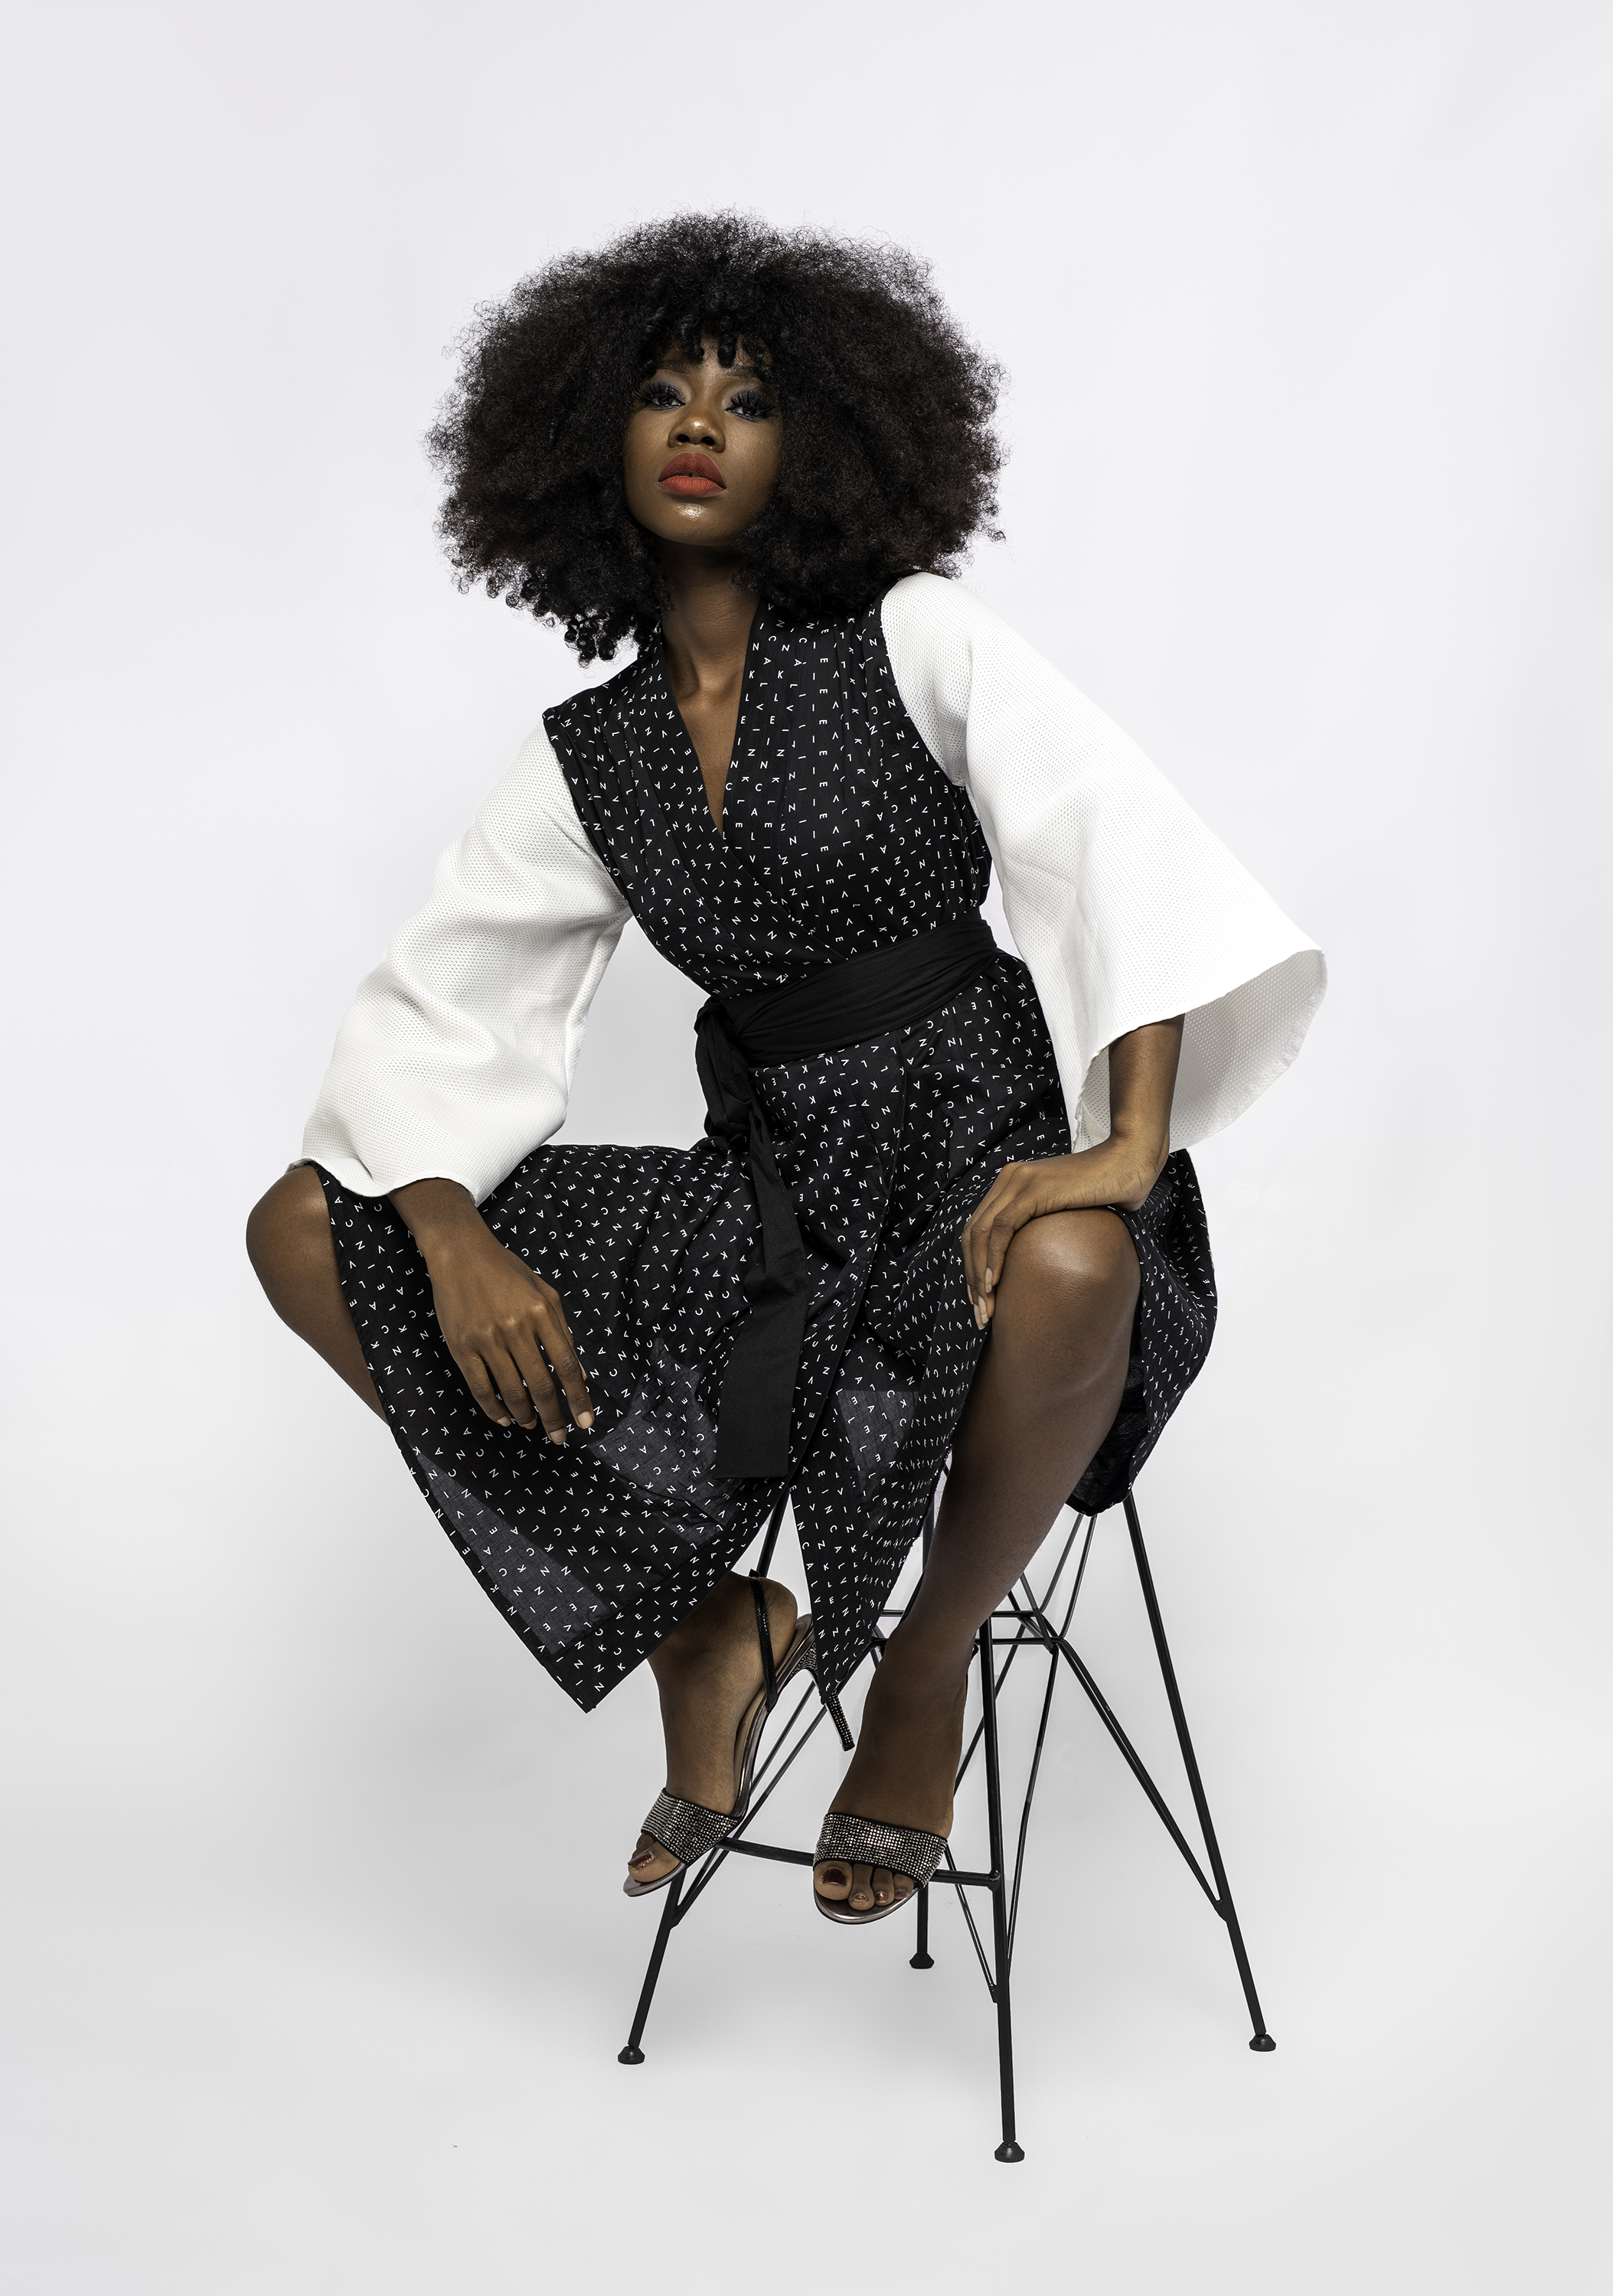 Model sitting on chair wearing Bolupe's designs.